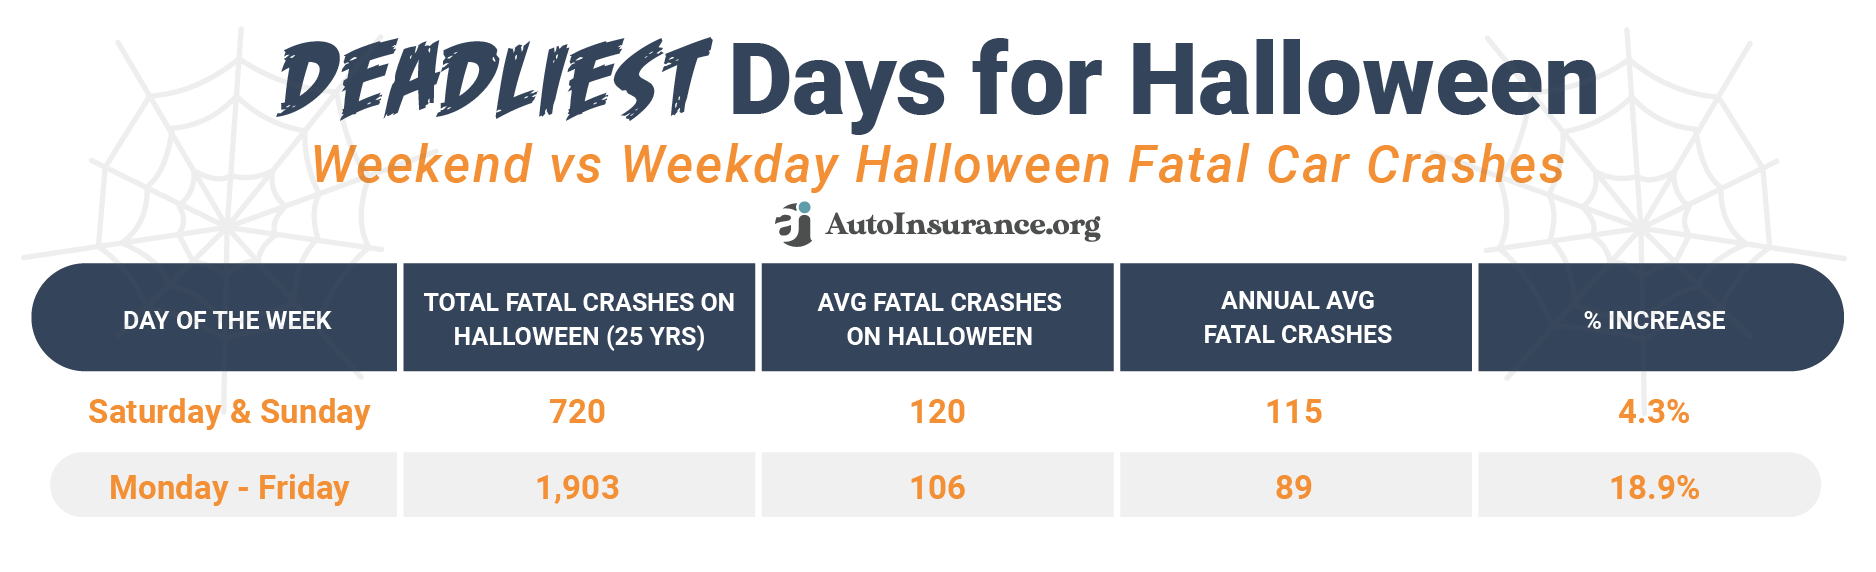 Deadliest Days for Halloween